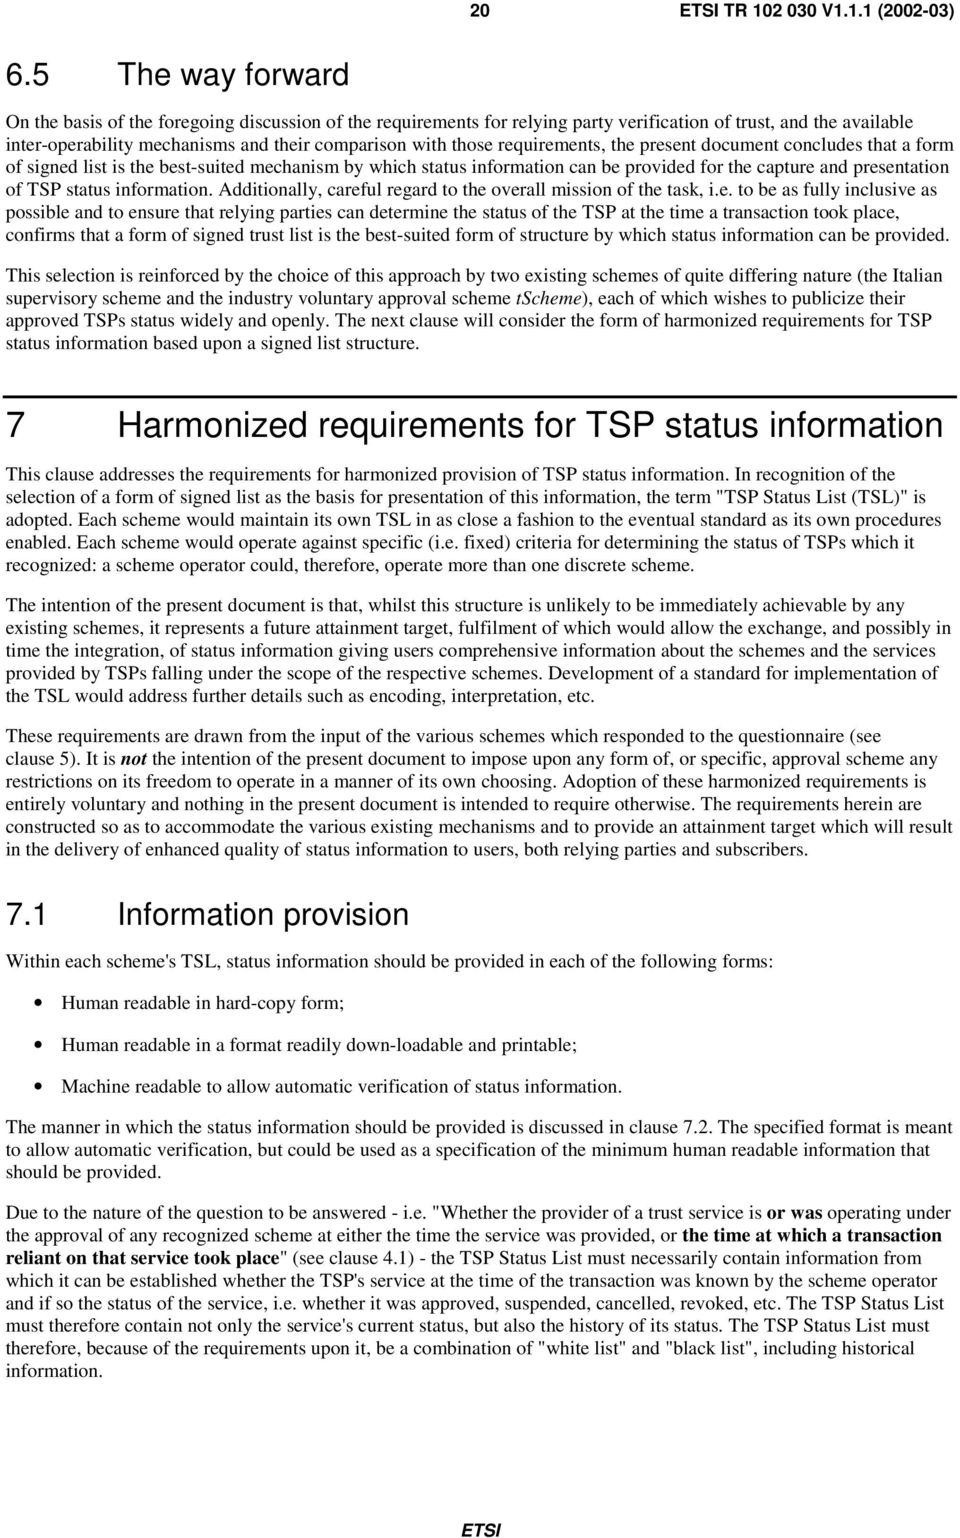 requirements, the present document concludes that a form of signed list is the best-suited mechanism by which status information can be provided for the capture and presentation of TSP status